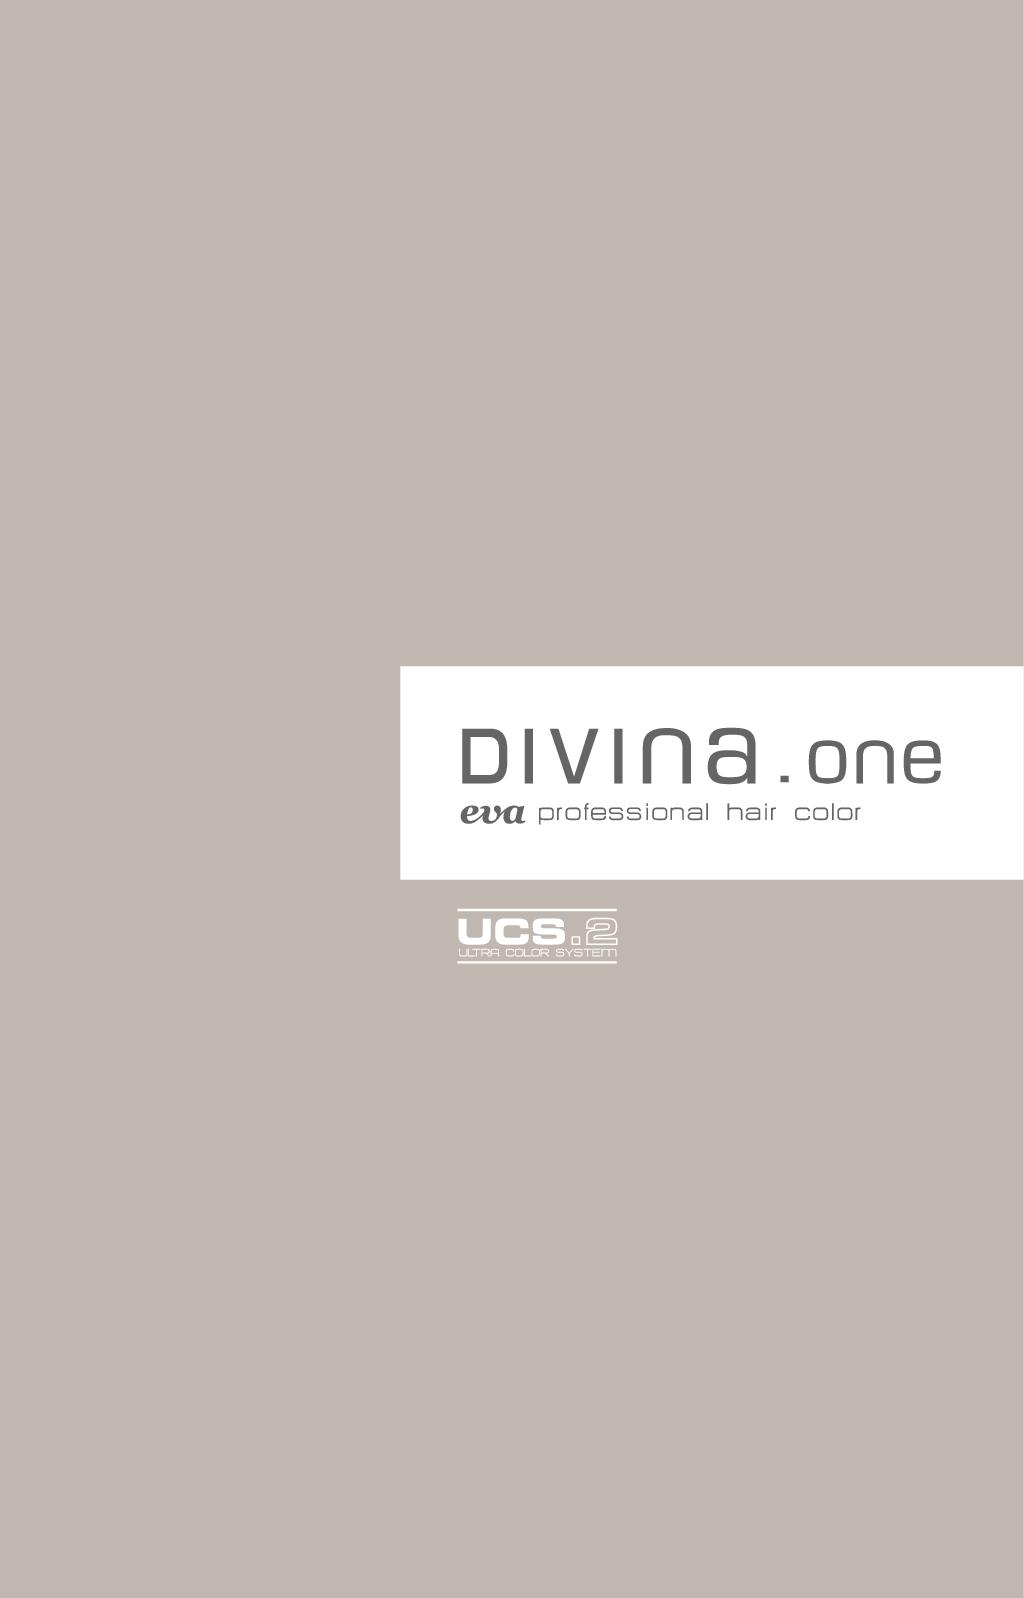 Divina One